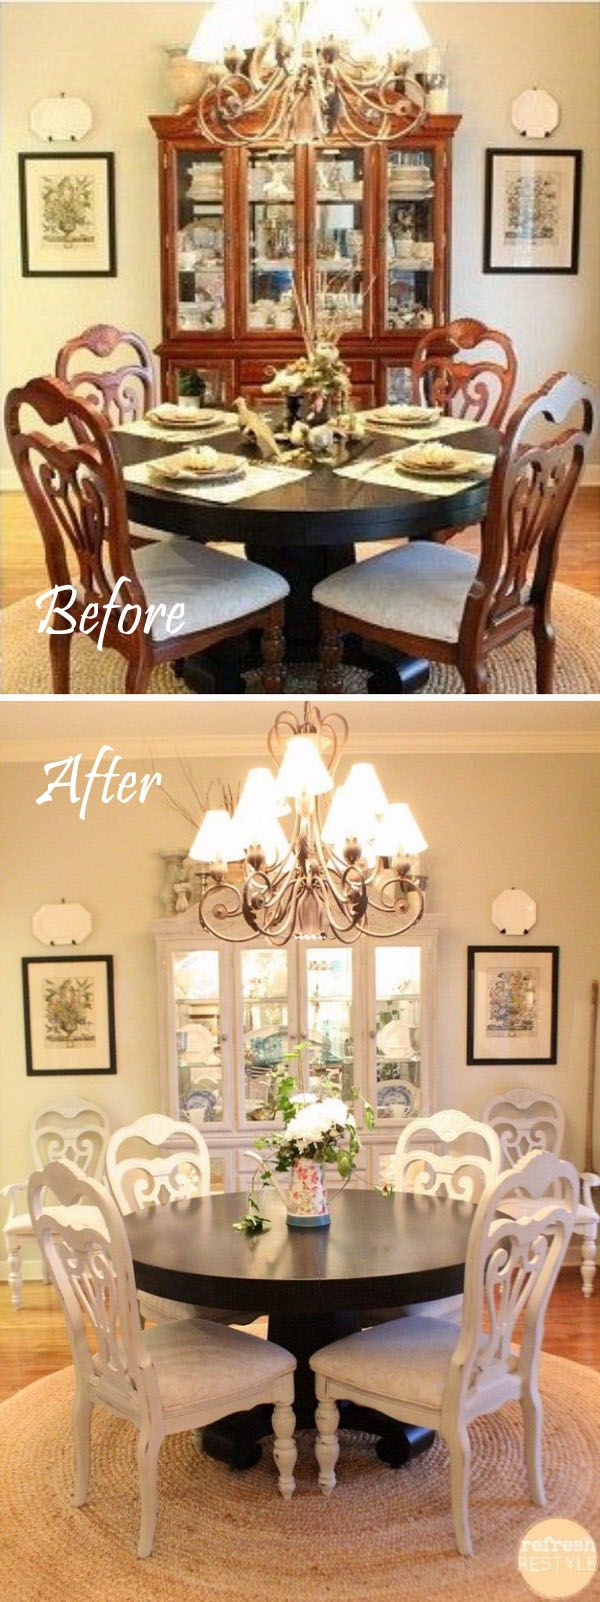 Easy And Budget Friendly Dining Room Makeover Ideas. 25  best ideas about Dining Room Makeovers on Pinterest   Chair